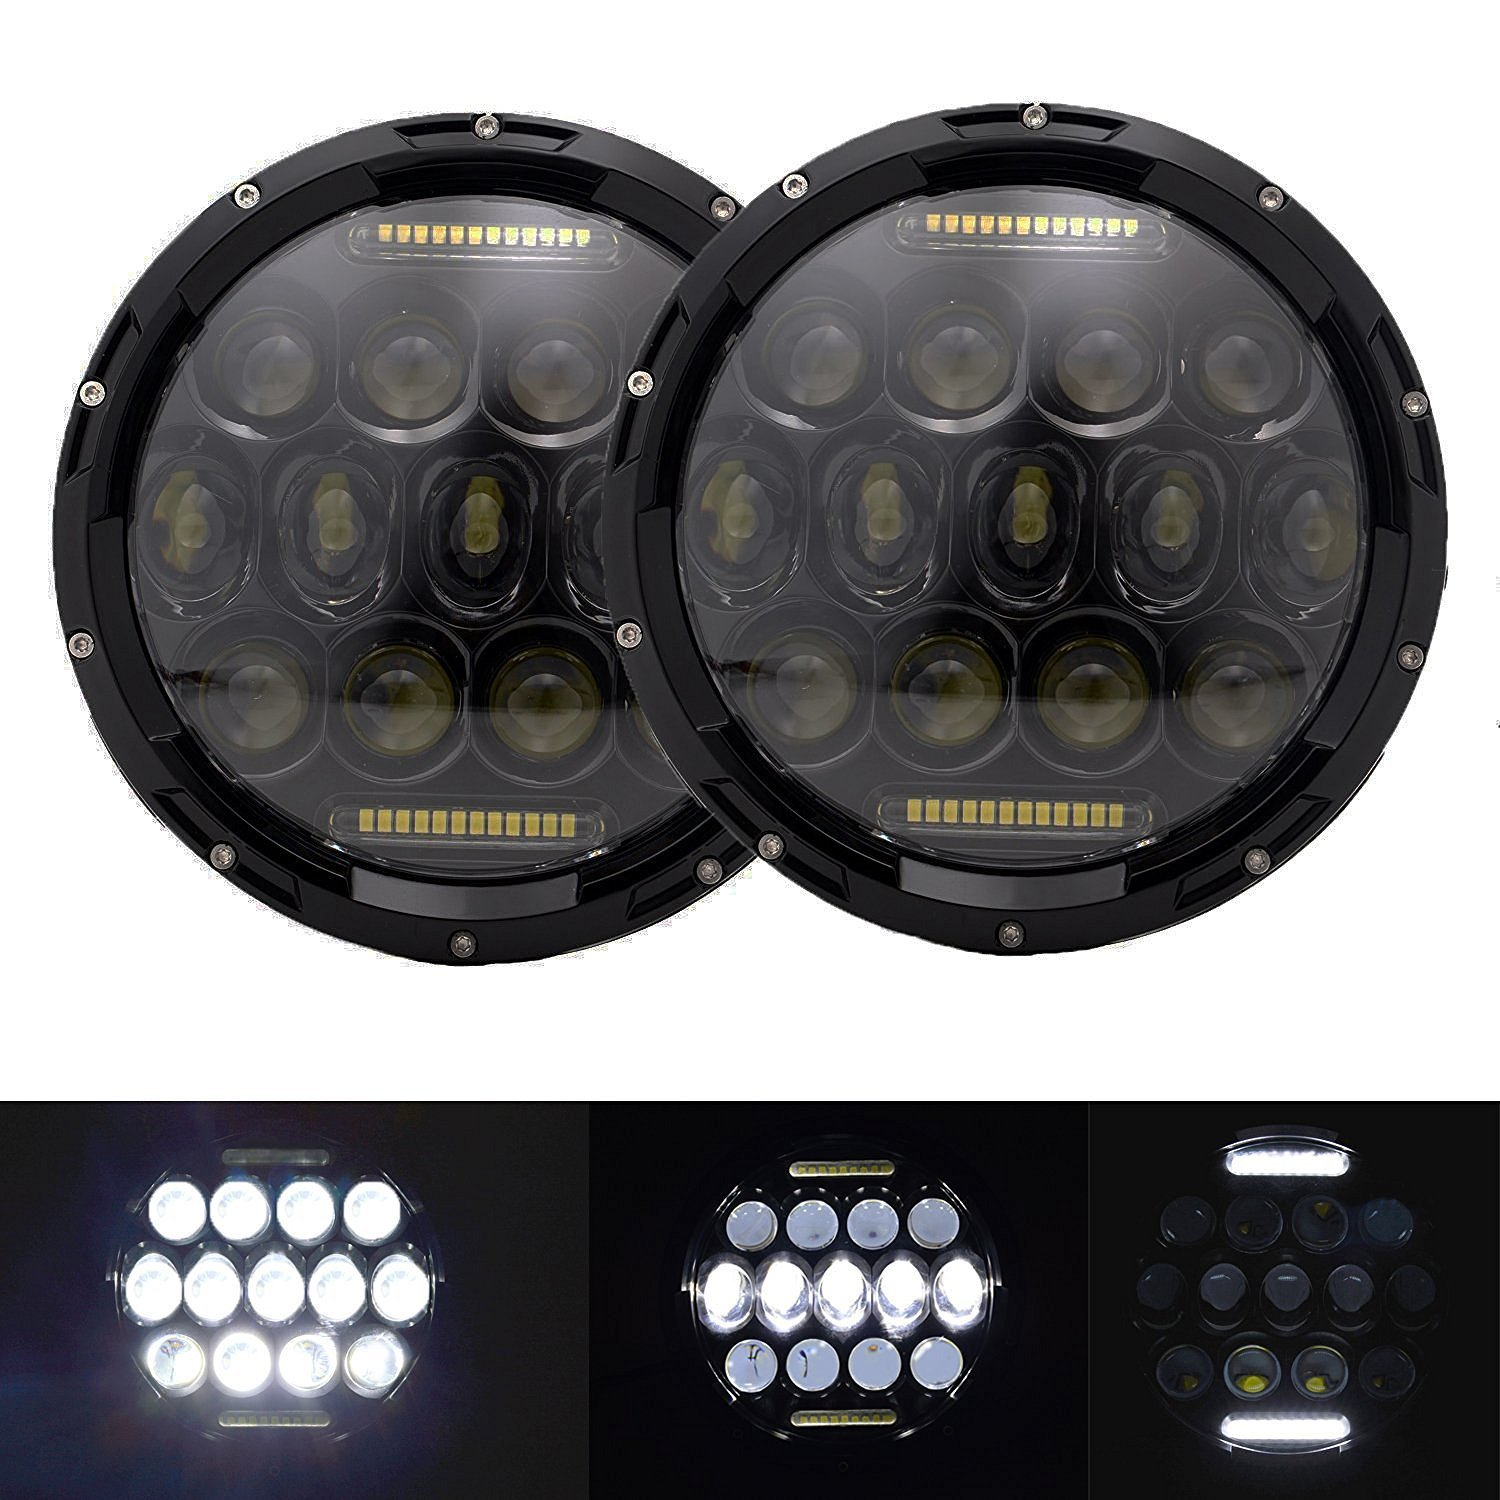 Plug /& Play Harley Davidson Motorcycles H4 to H13 Adapter Land Cruiser /& More Universal 7 Round H4 45W LED Headlight Sealed Beam 2 pc Set Halo Turn Signal /& DRL Cold White ONLINE LED STORE 4350367606 - for Jeep